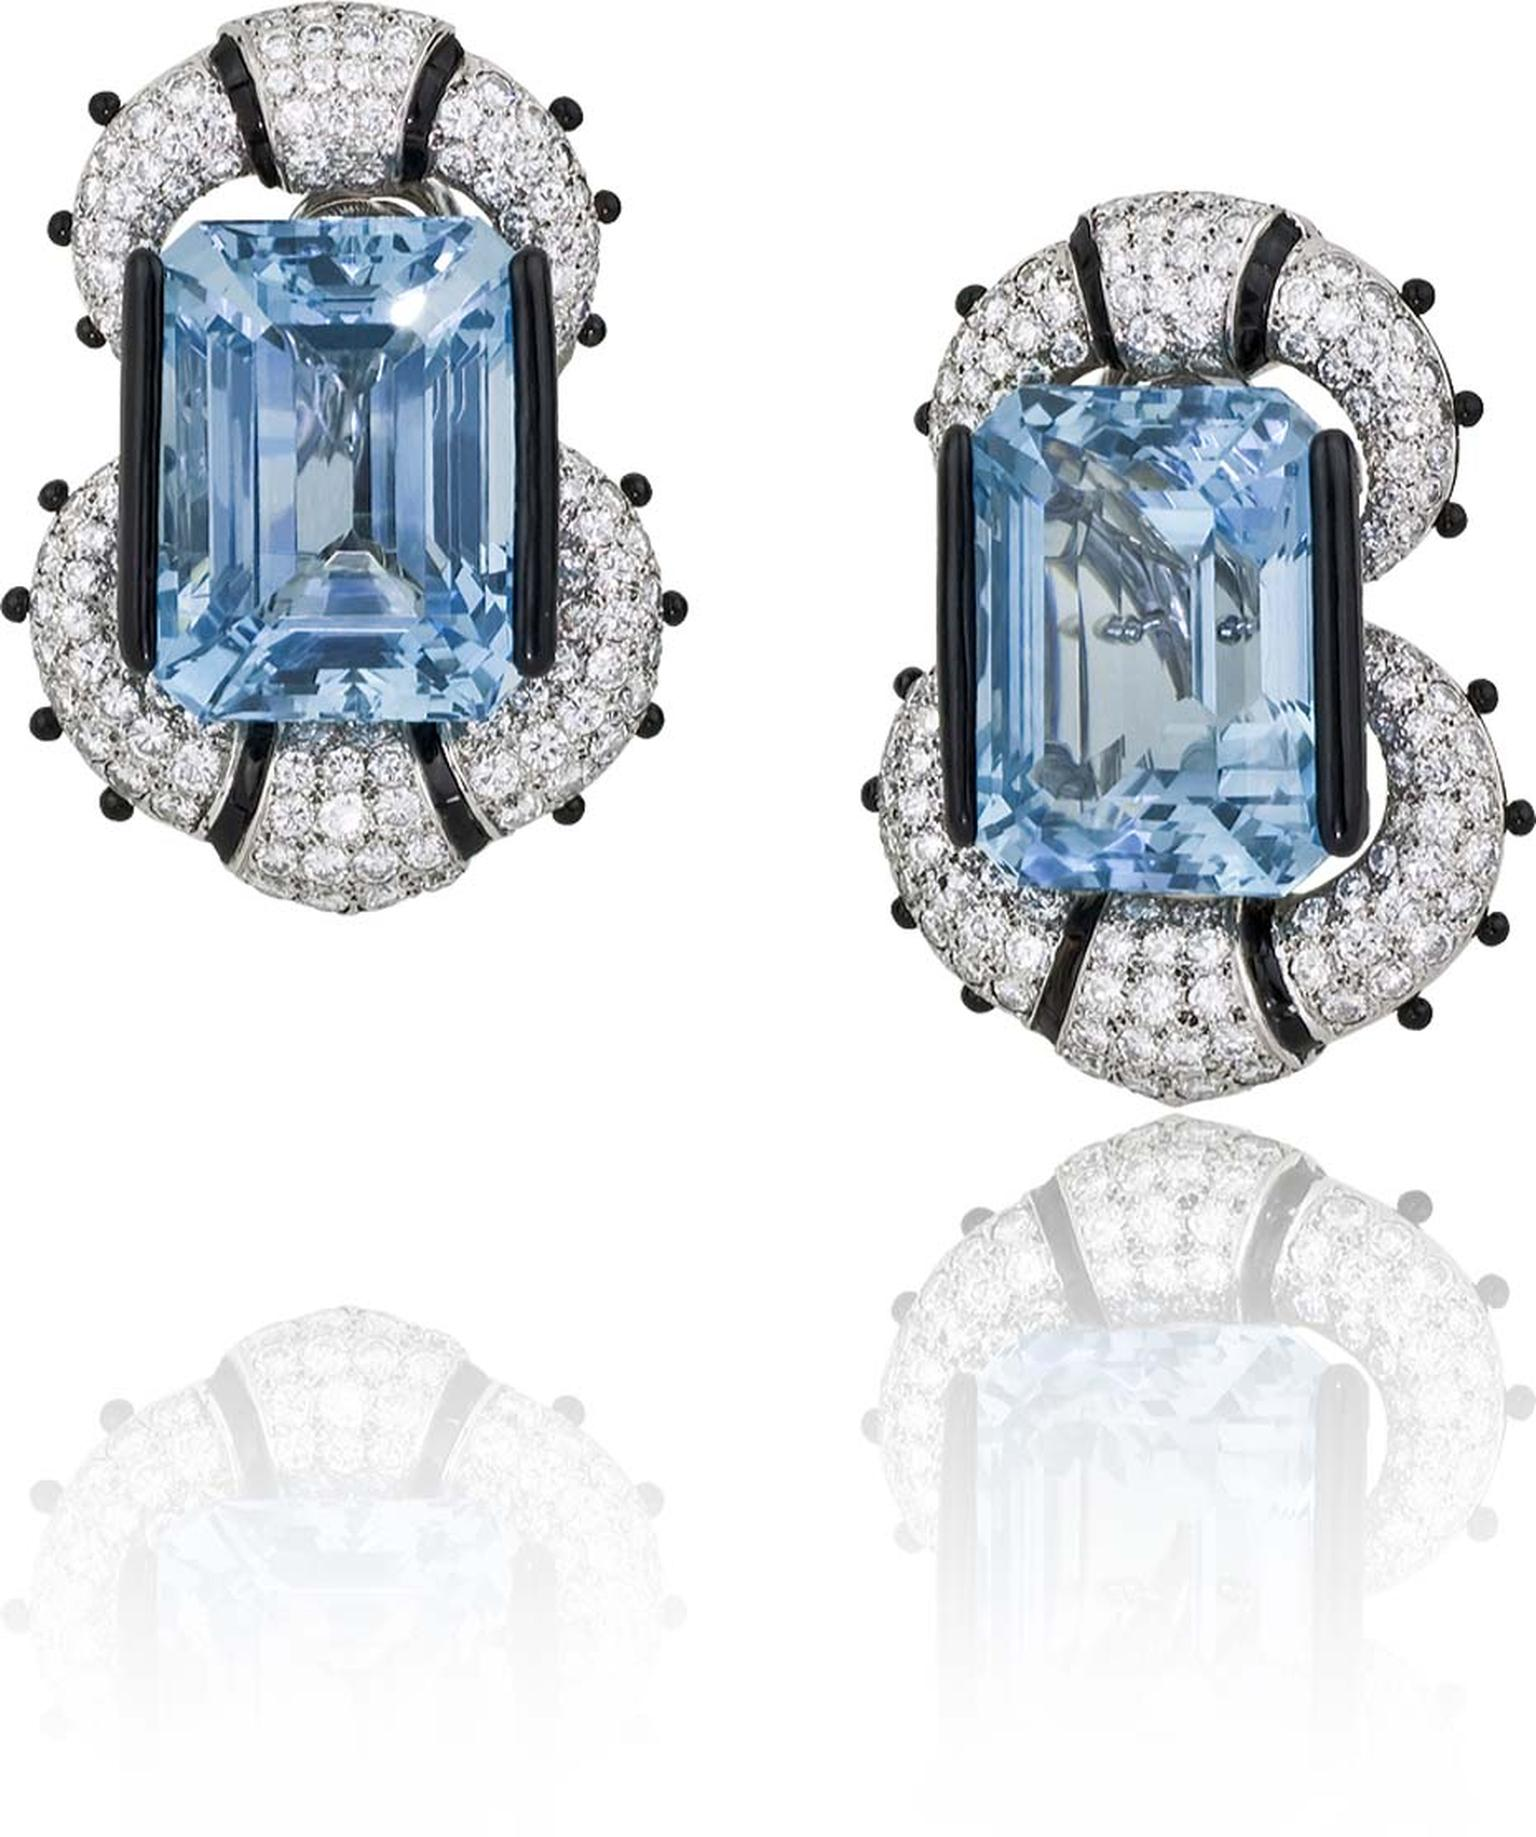 New York Gallery Stephen Russell's platinum earrings with aquamarines, diamonds and black enamel.